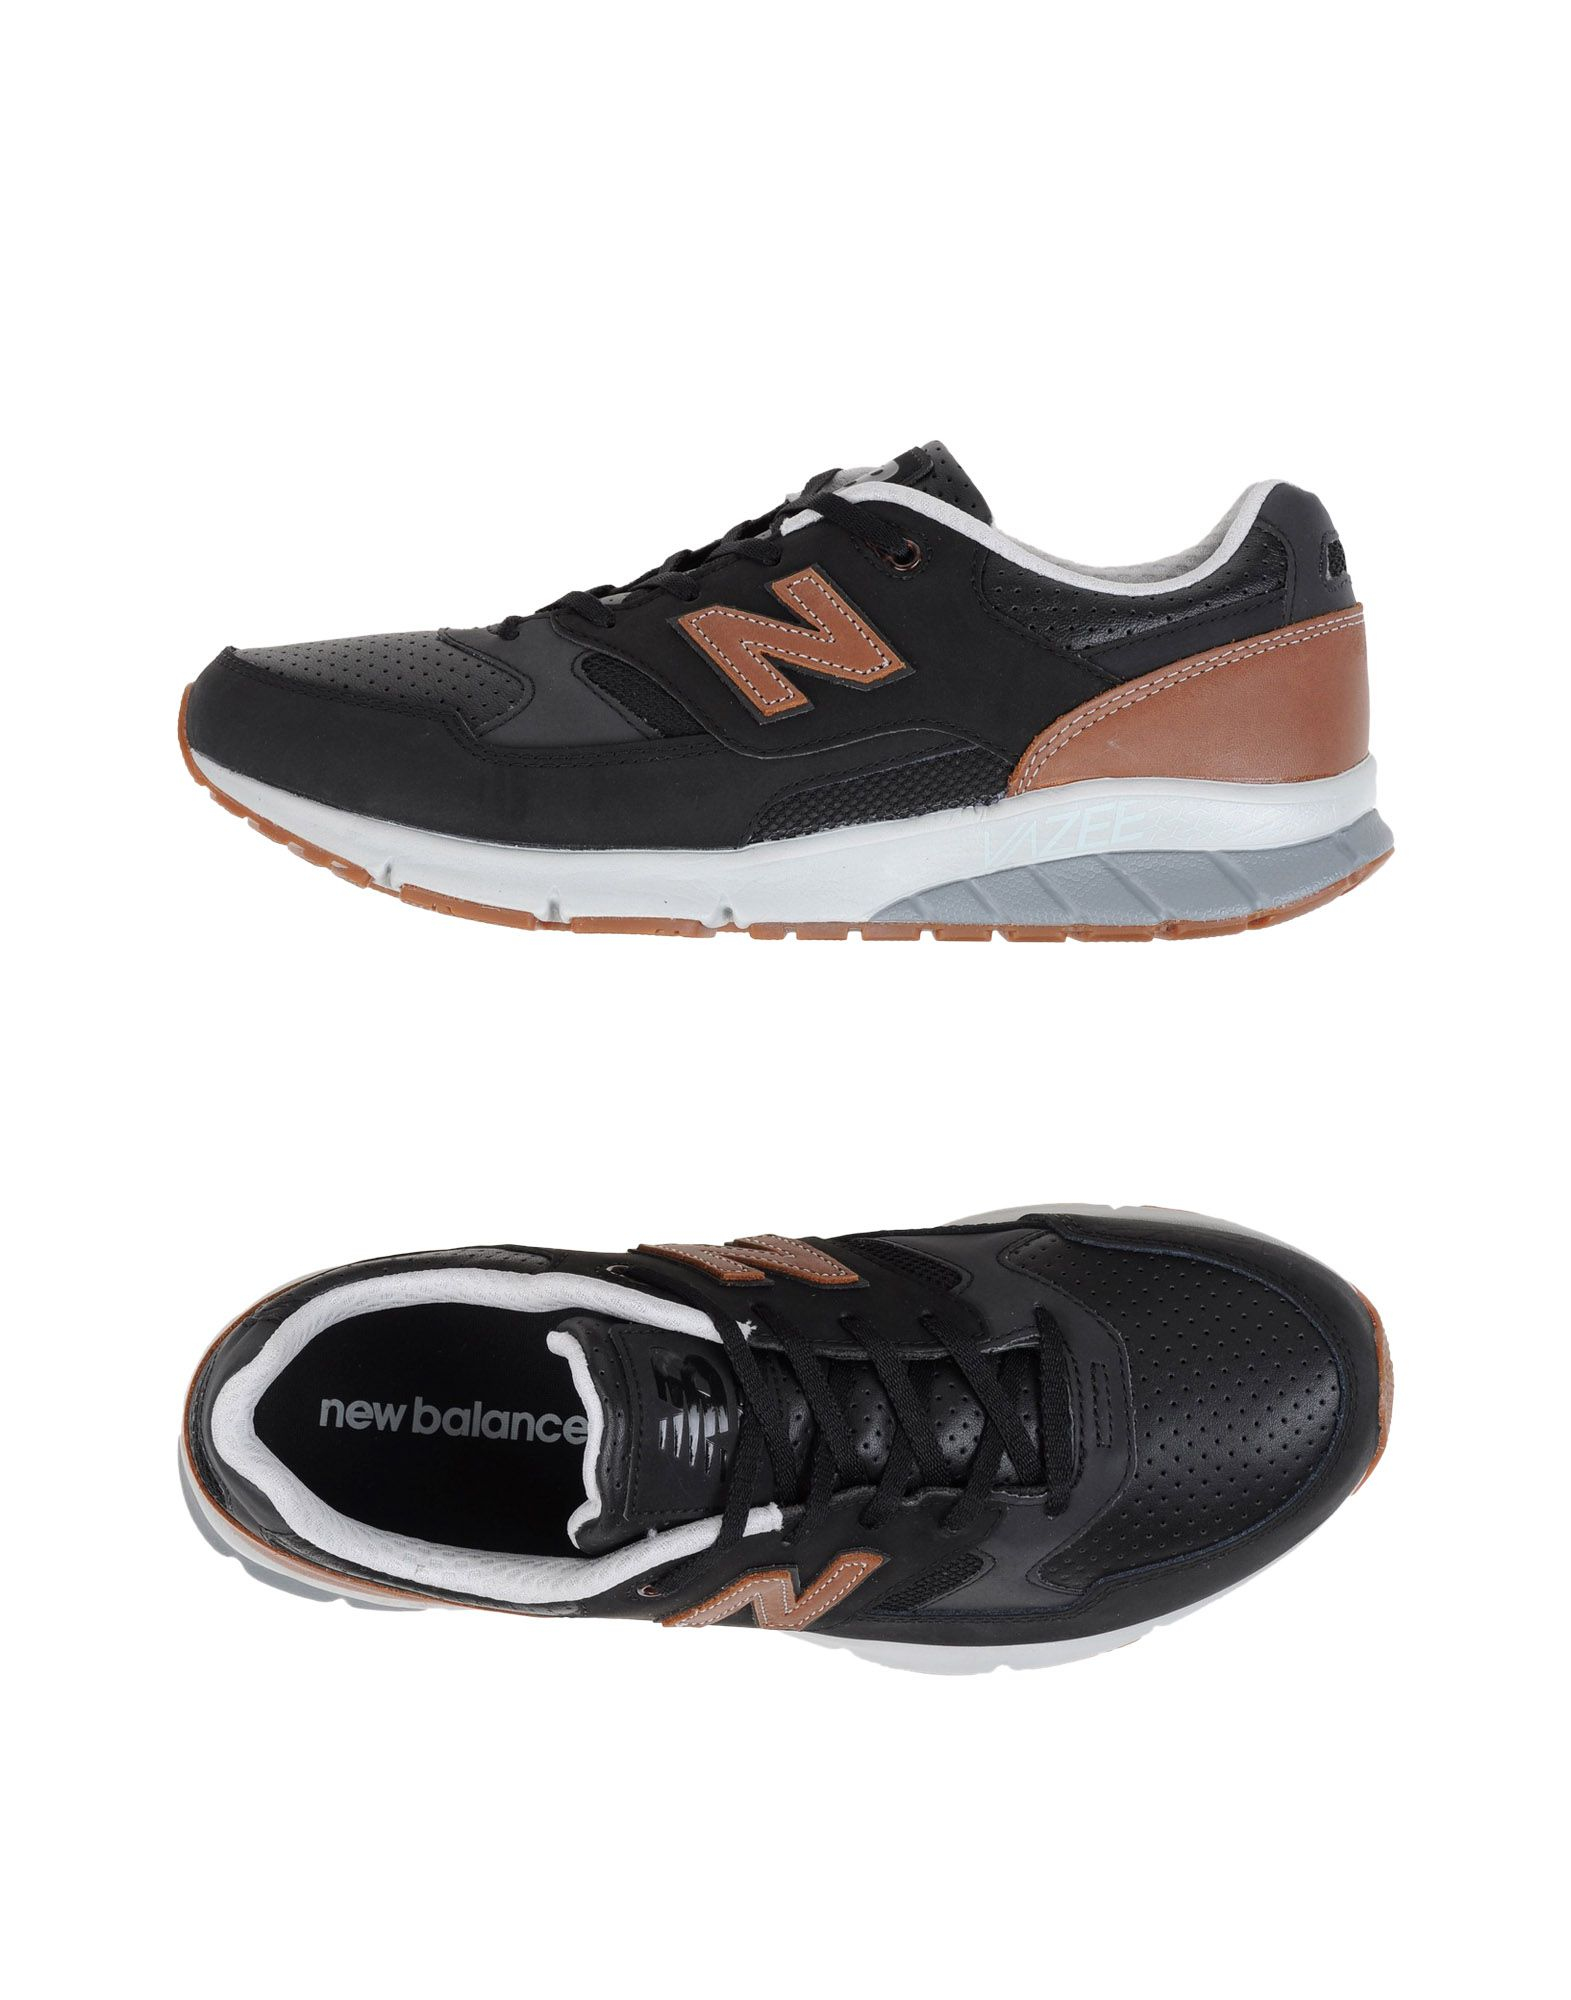 Scarpe Leather da Ginnastica New Balance 530 Vazee Luxury Leather Scarpe - Uomo - 11104168TL 50badc